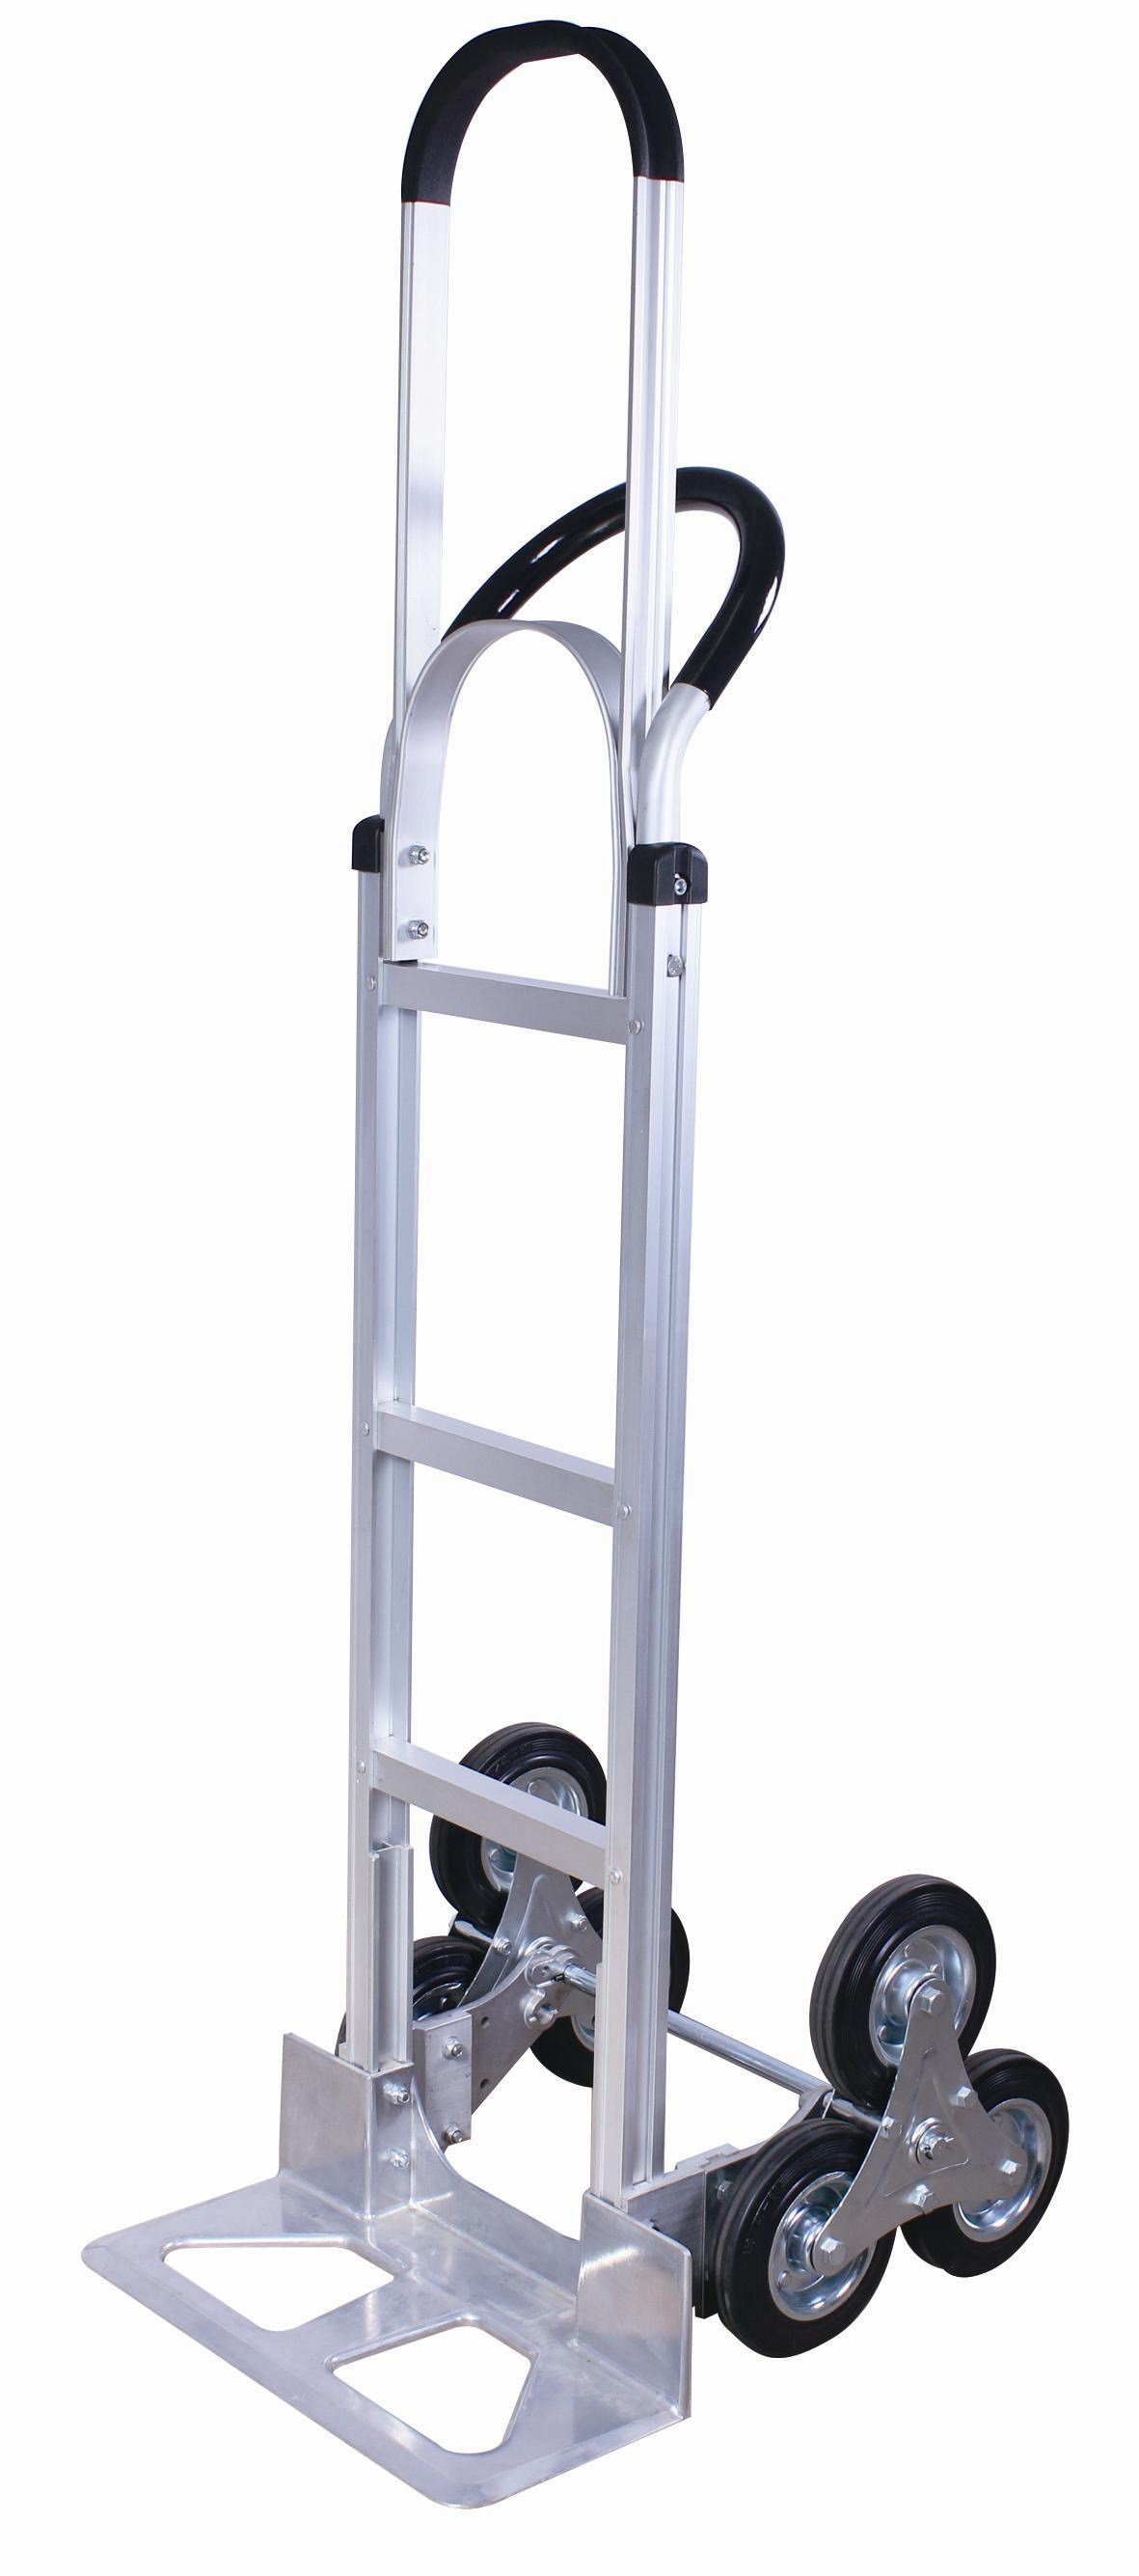 Tyke Supply Aluminum Stair Climber Hand Truck HS 33 6 Wheel Hand Cart